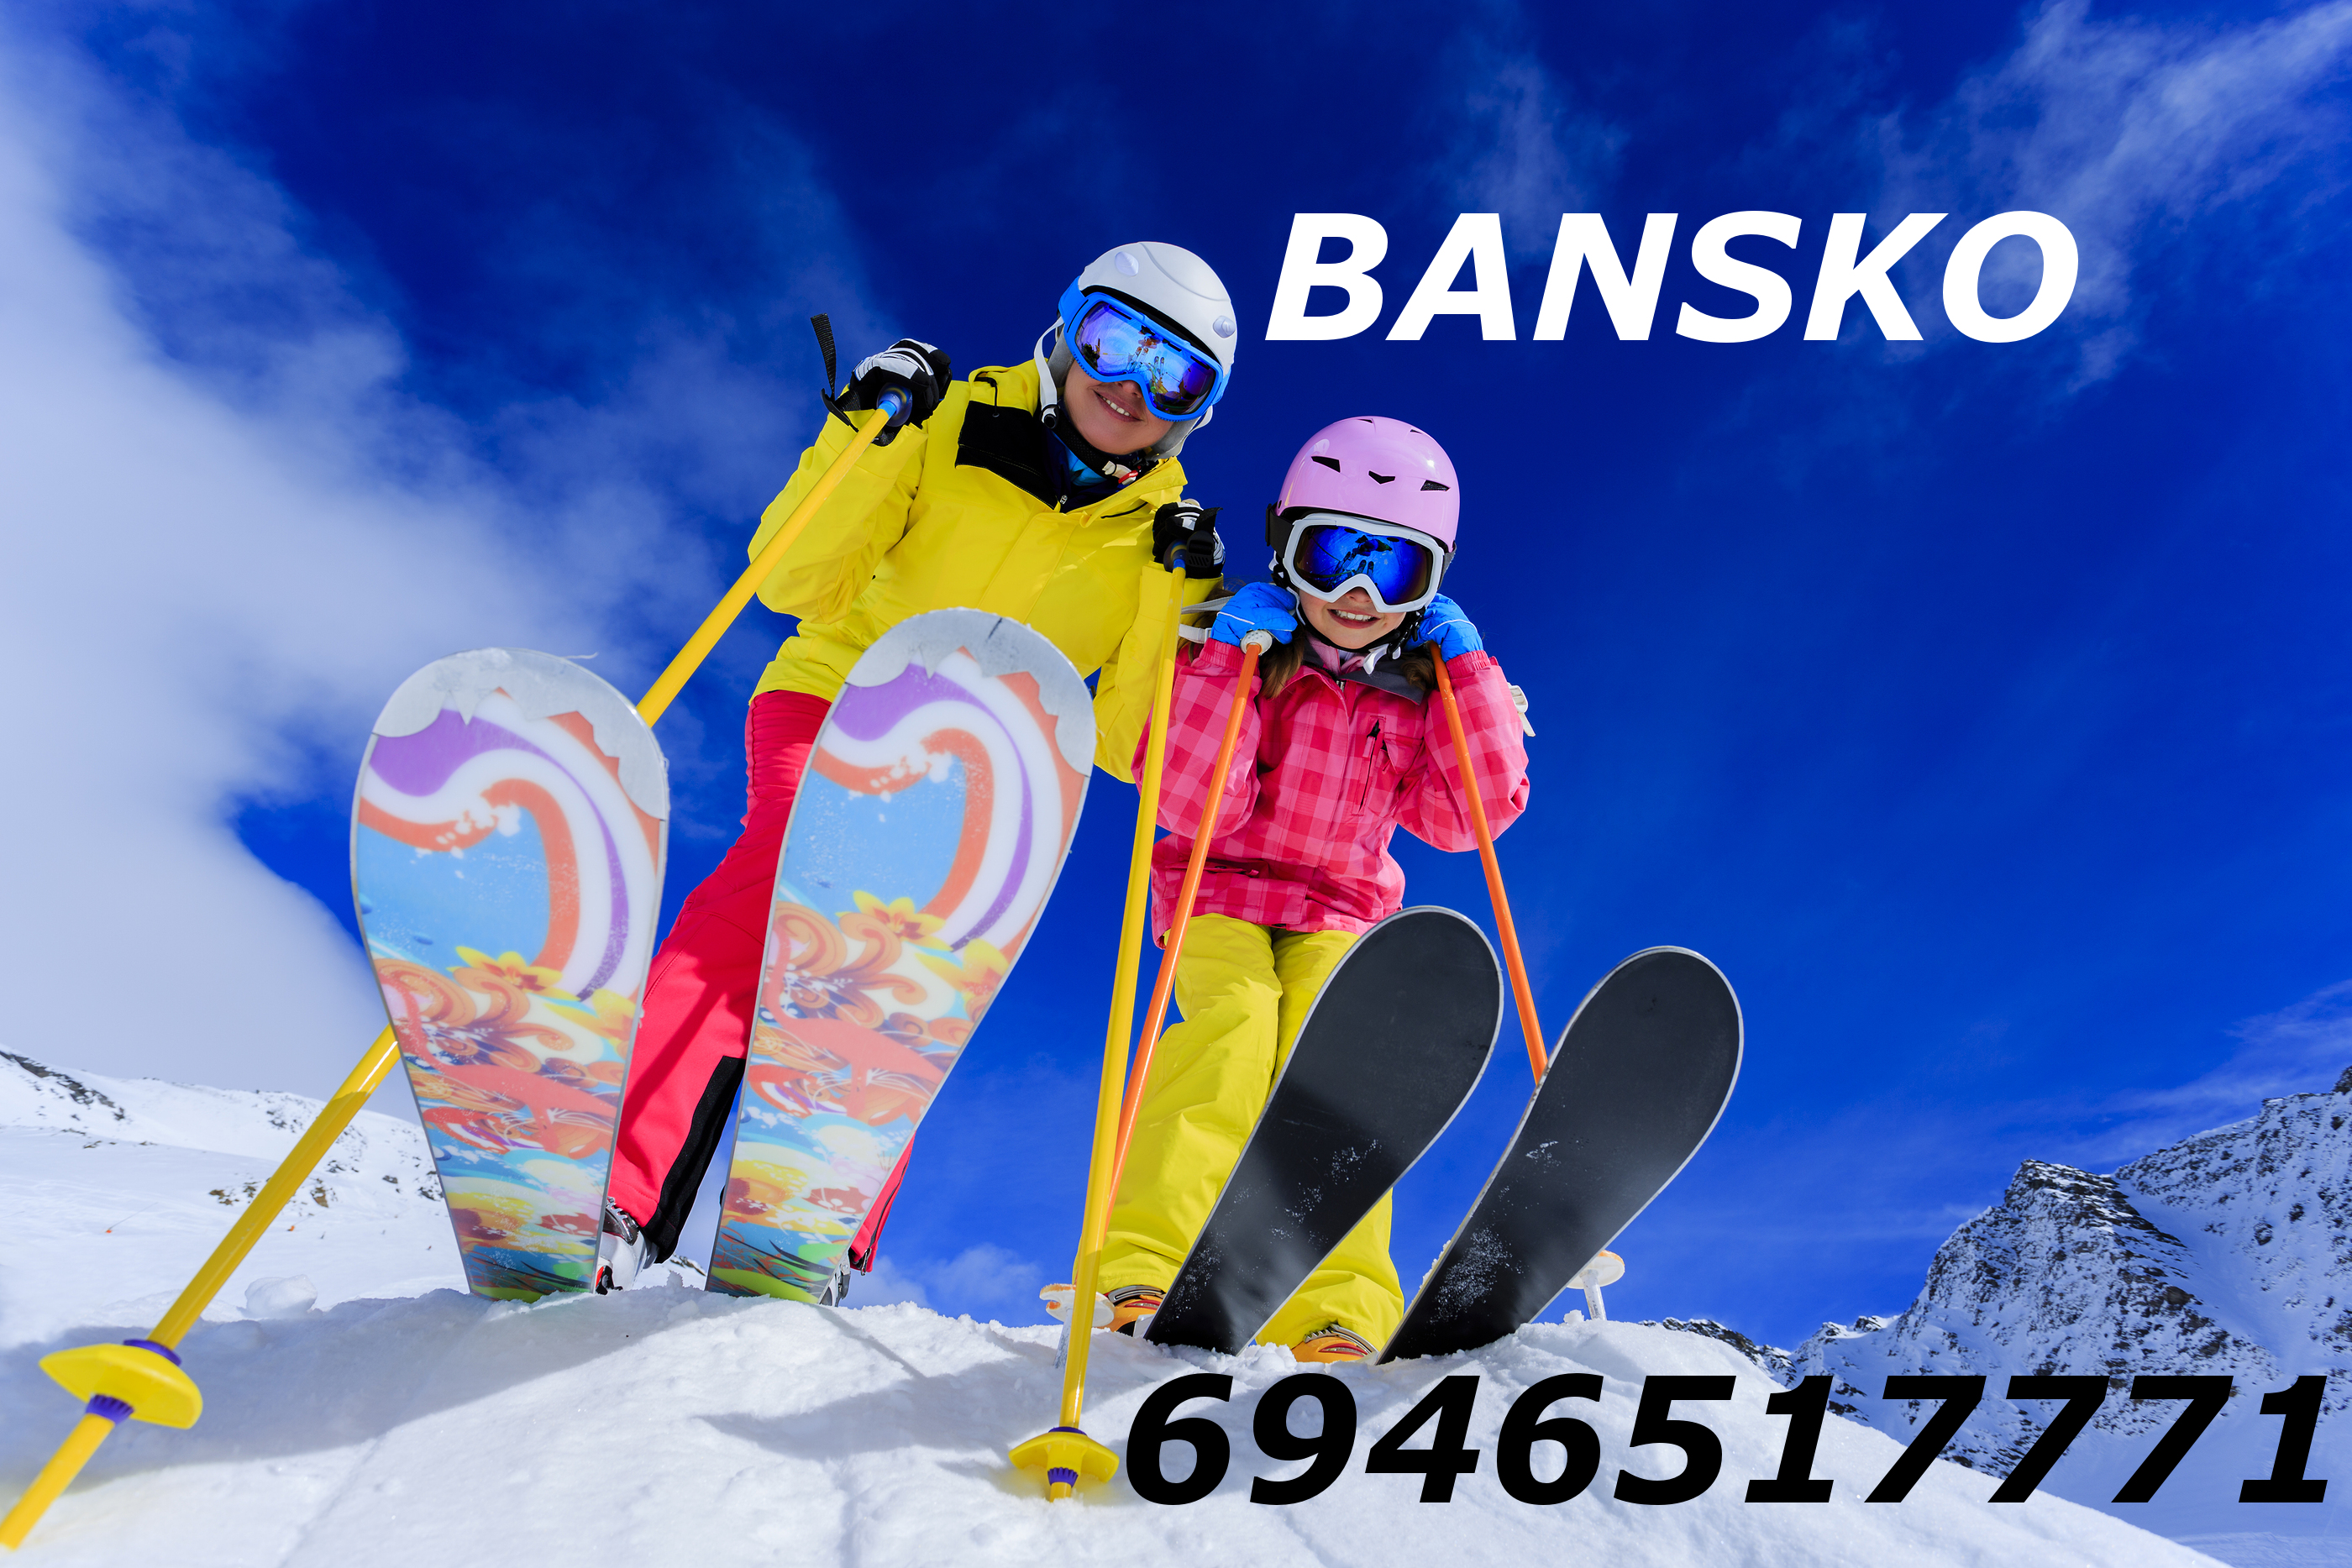 bigstock-Ski-skiers-sun-and-winter-fu-51676351-2